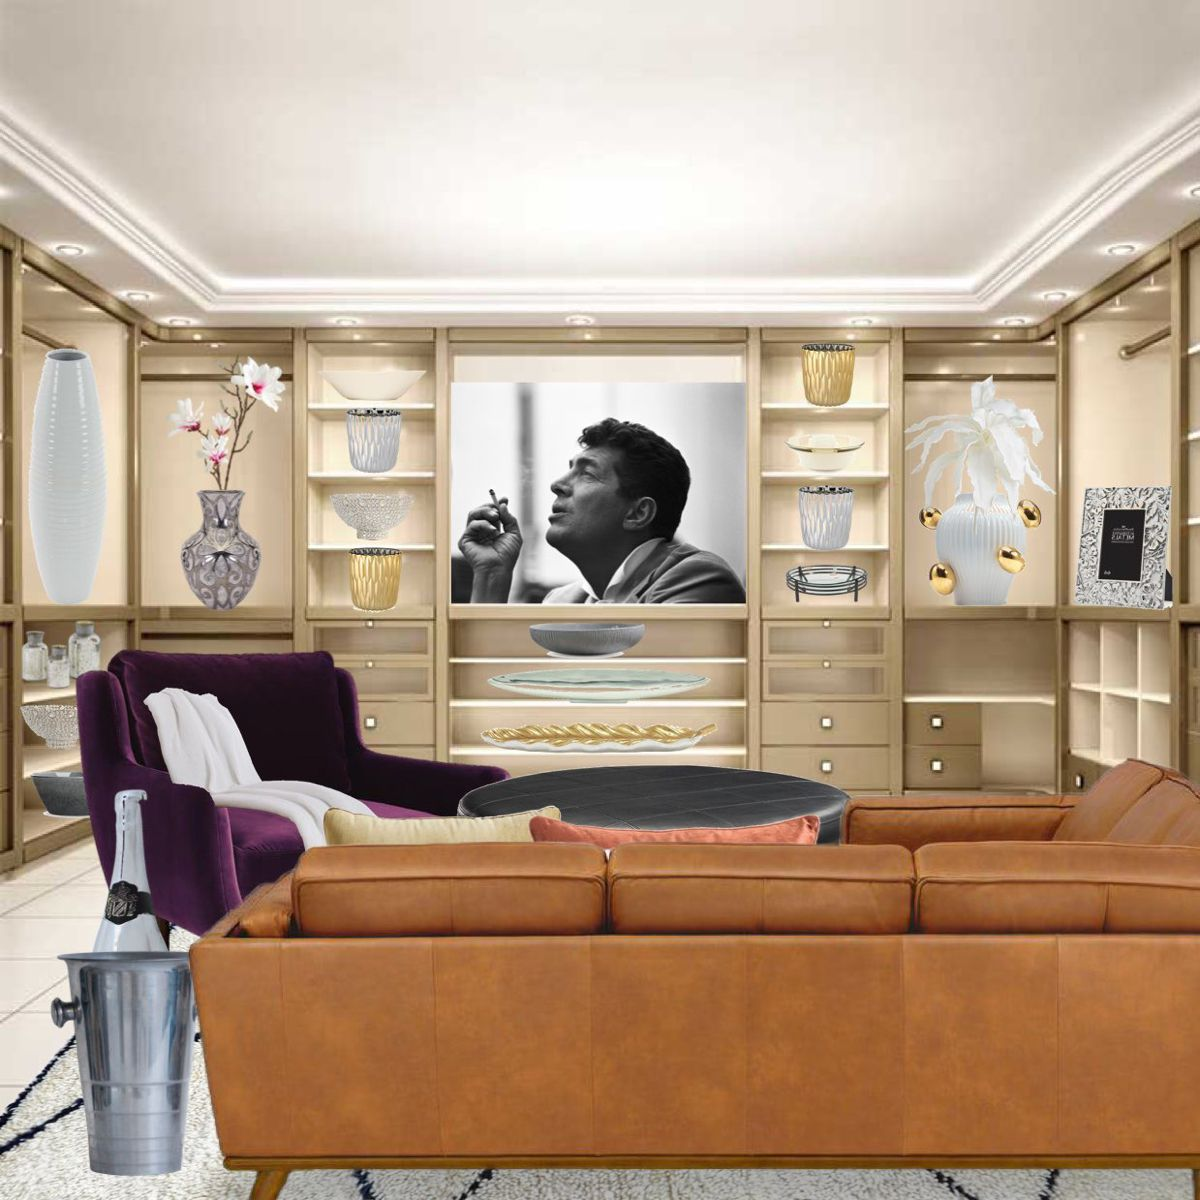 Luxury Basement Designs: If You Happen To Have An Basement In Your Region Gift